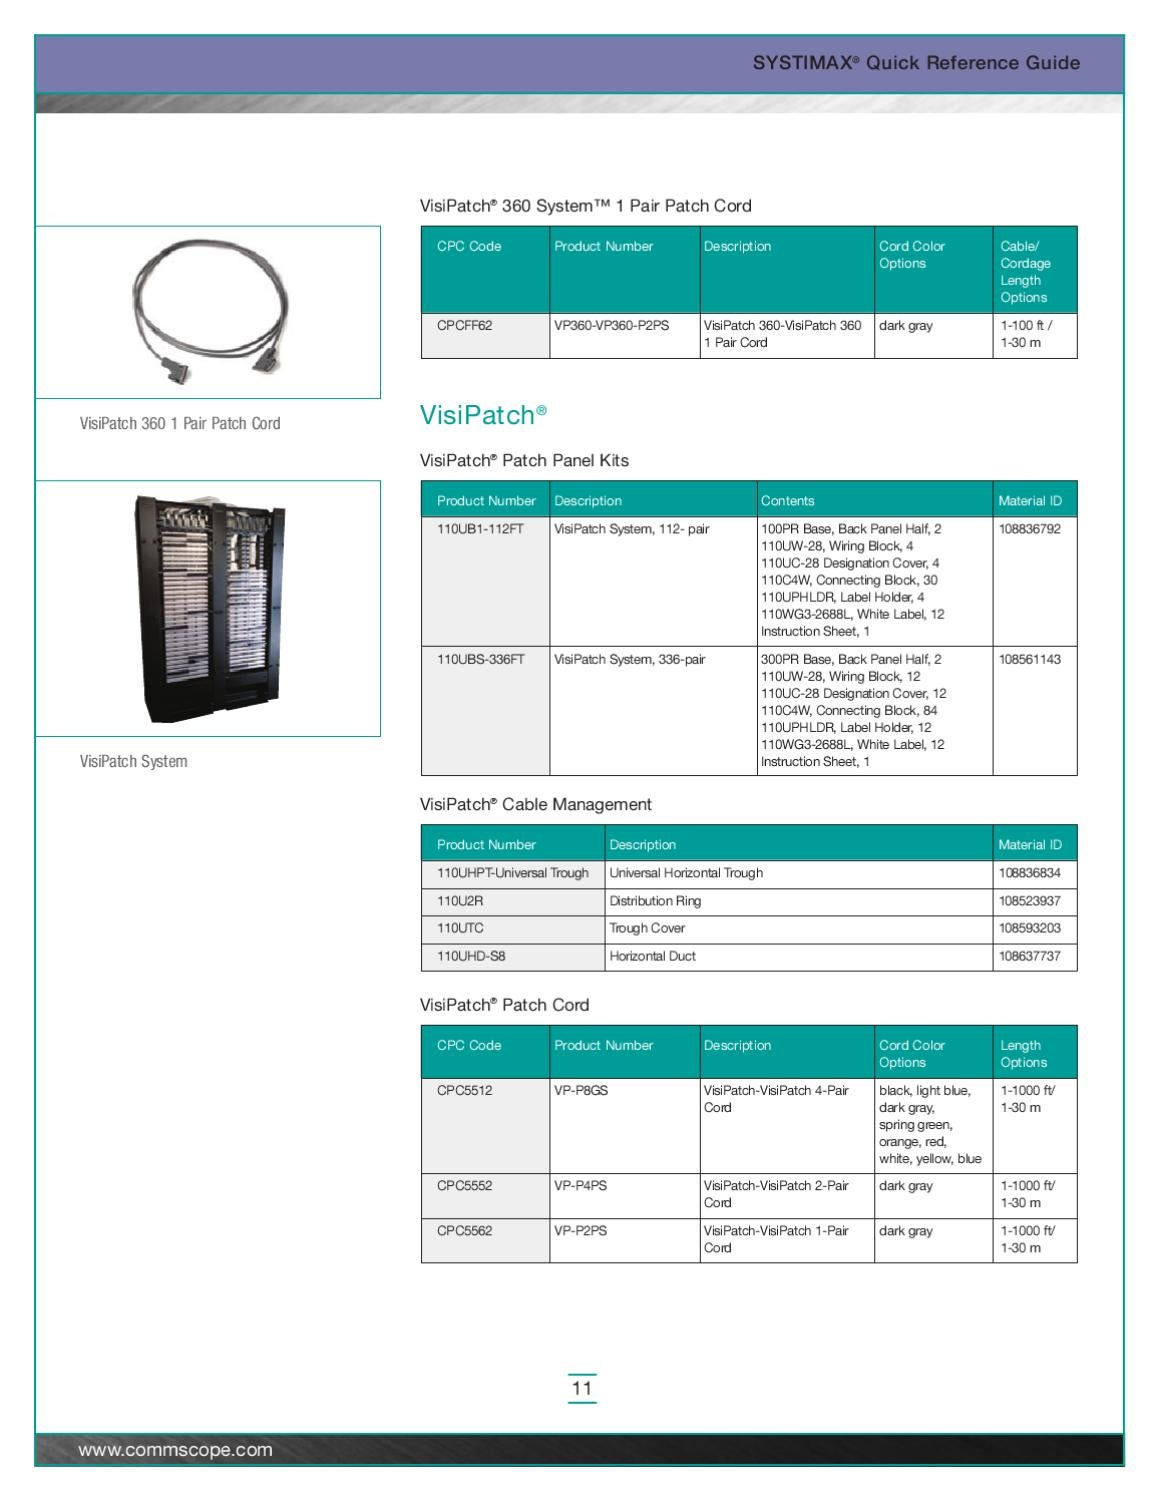 Systimax Quick Reference Product Guide by Accu-Tech - issuu